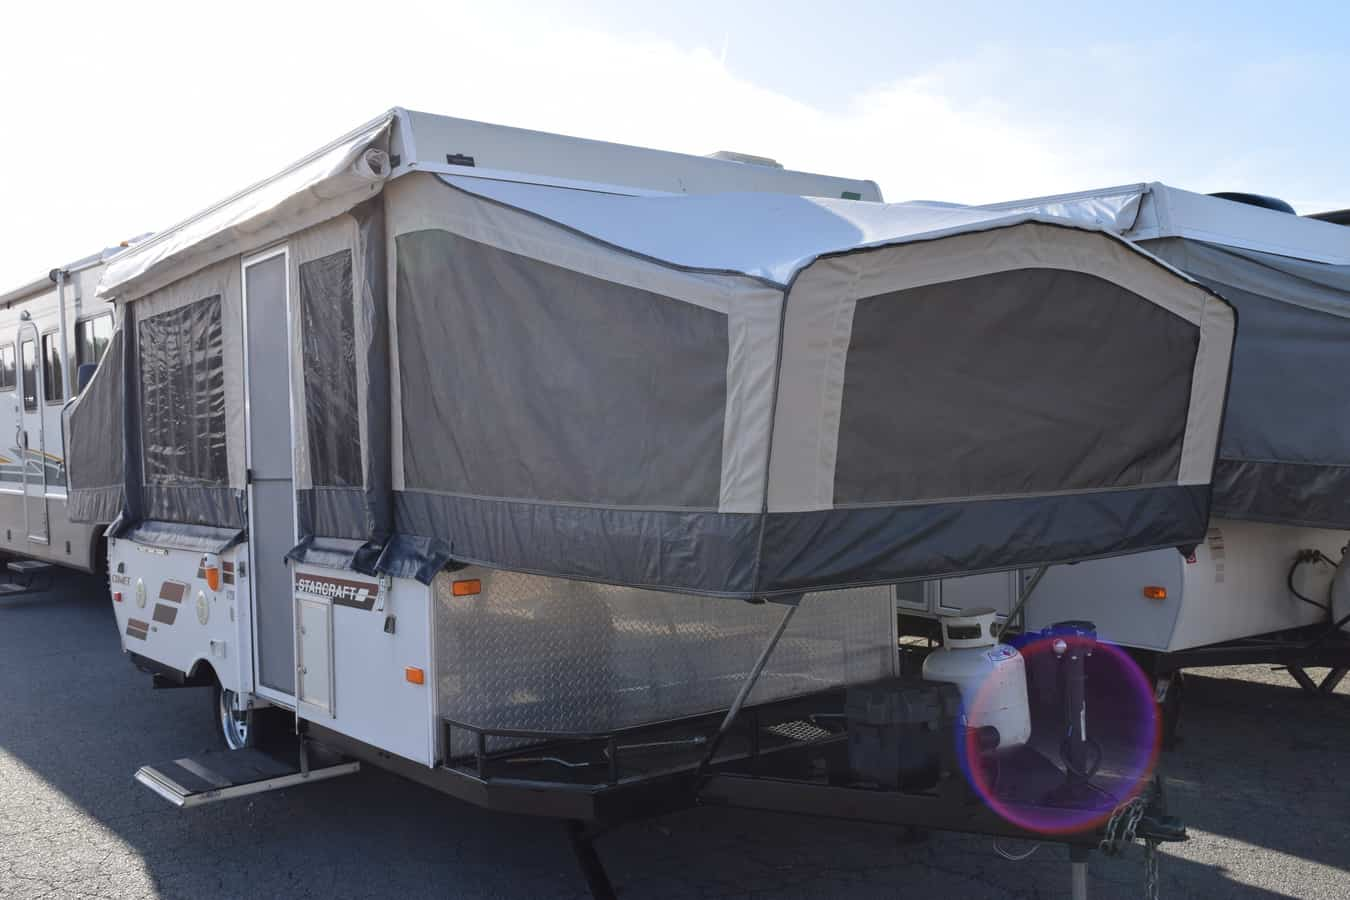 USED 2014 Starcraft STARCRAFT 1226 COMET - Three Way Campers